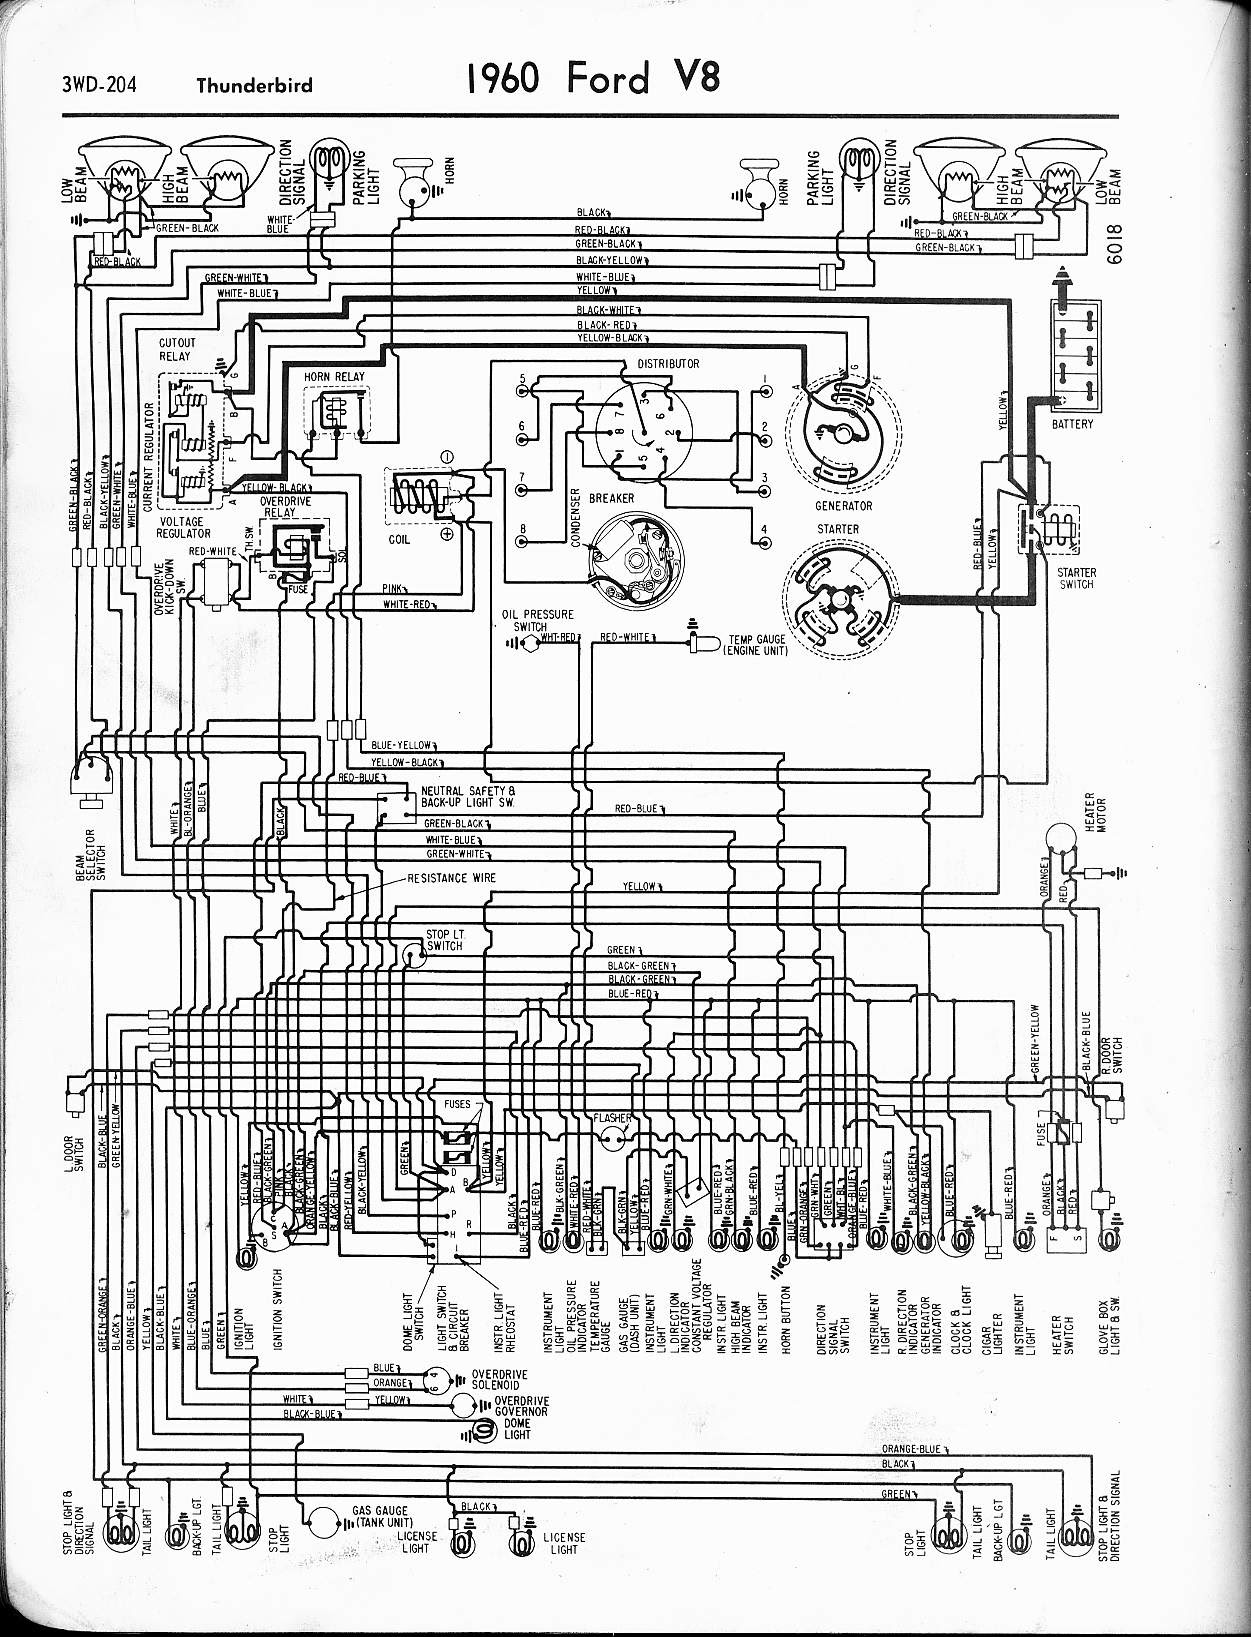 1972 F100 Wiring Diagram Wiring Diagram Multimedia Multimedia Wallabyviaggi It